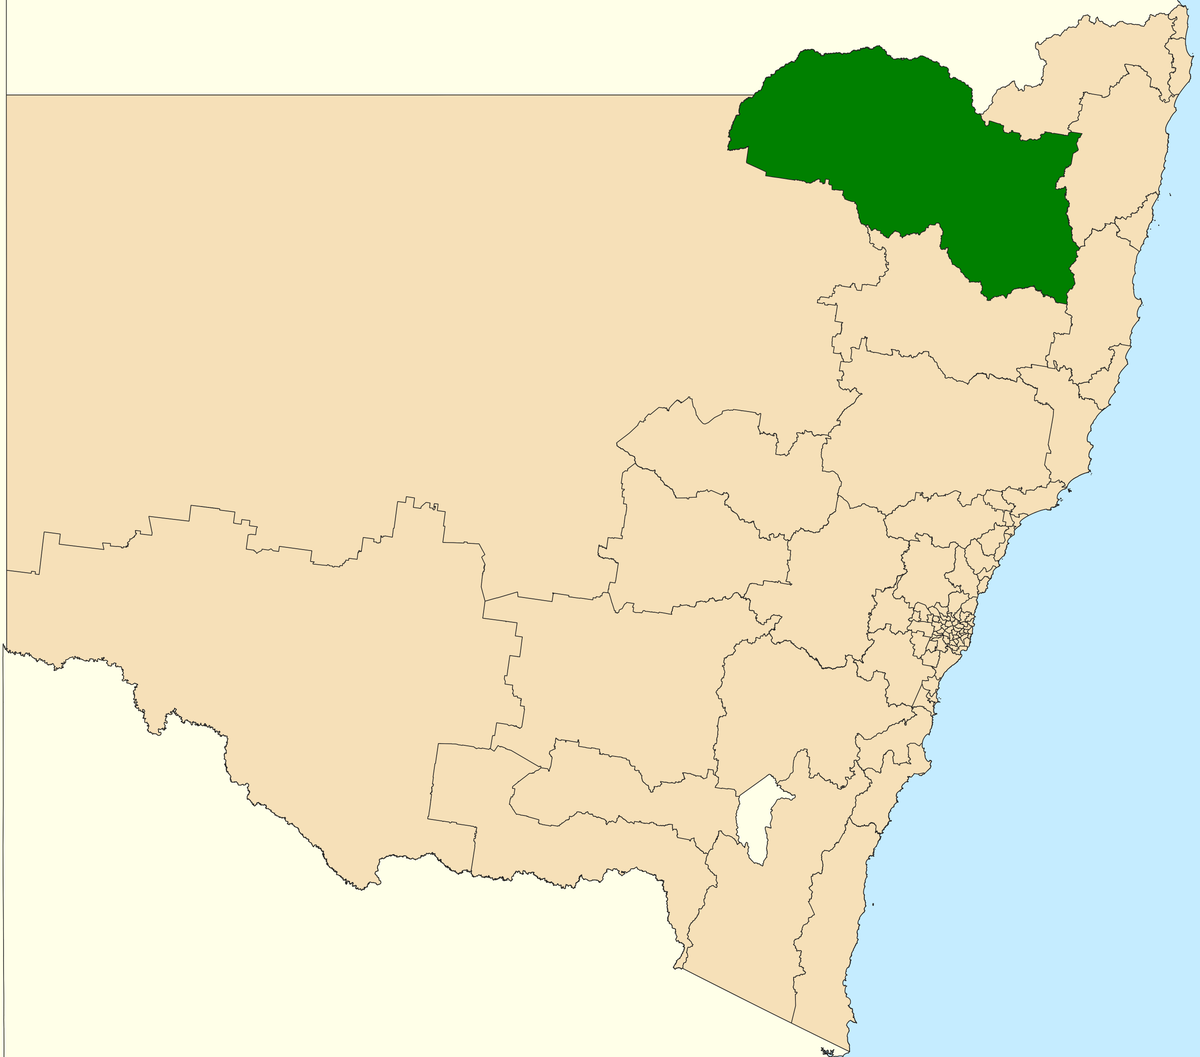 Electoral district of Northern Tablelands - Wikipedia